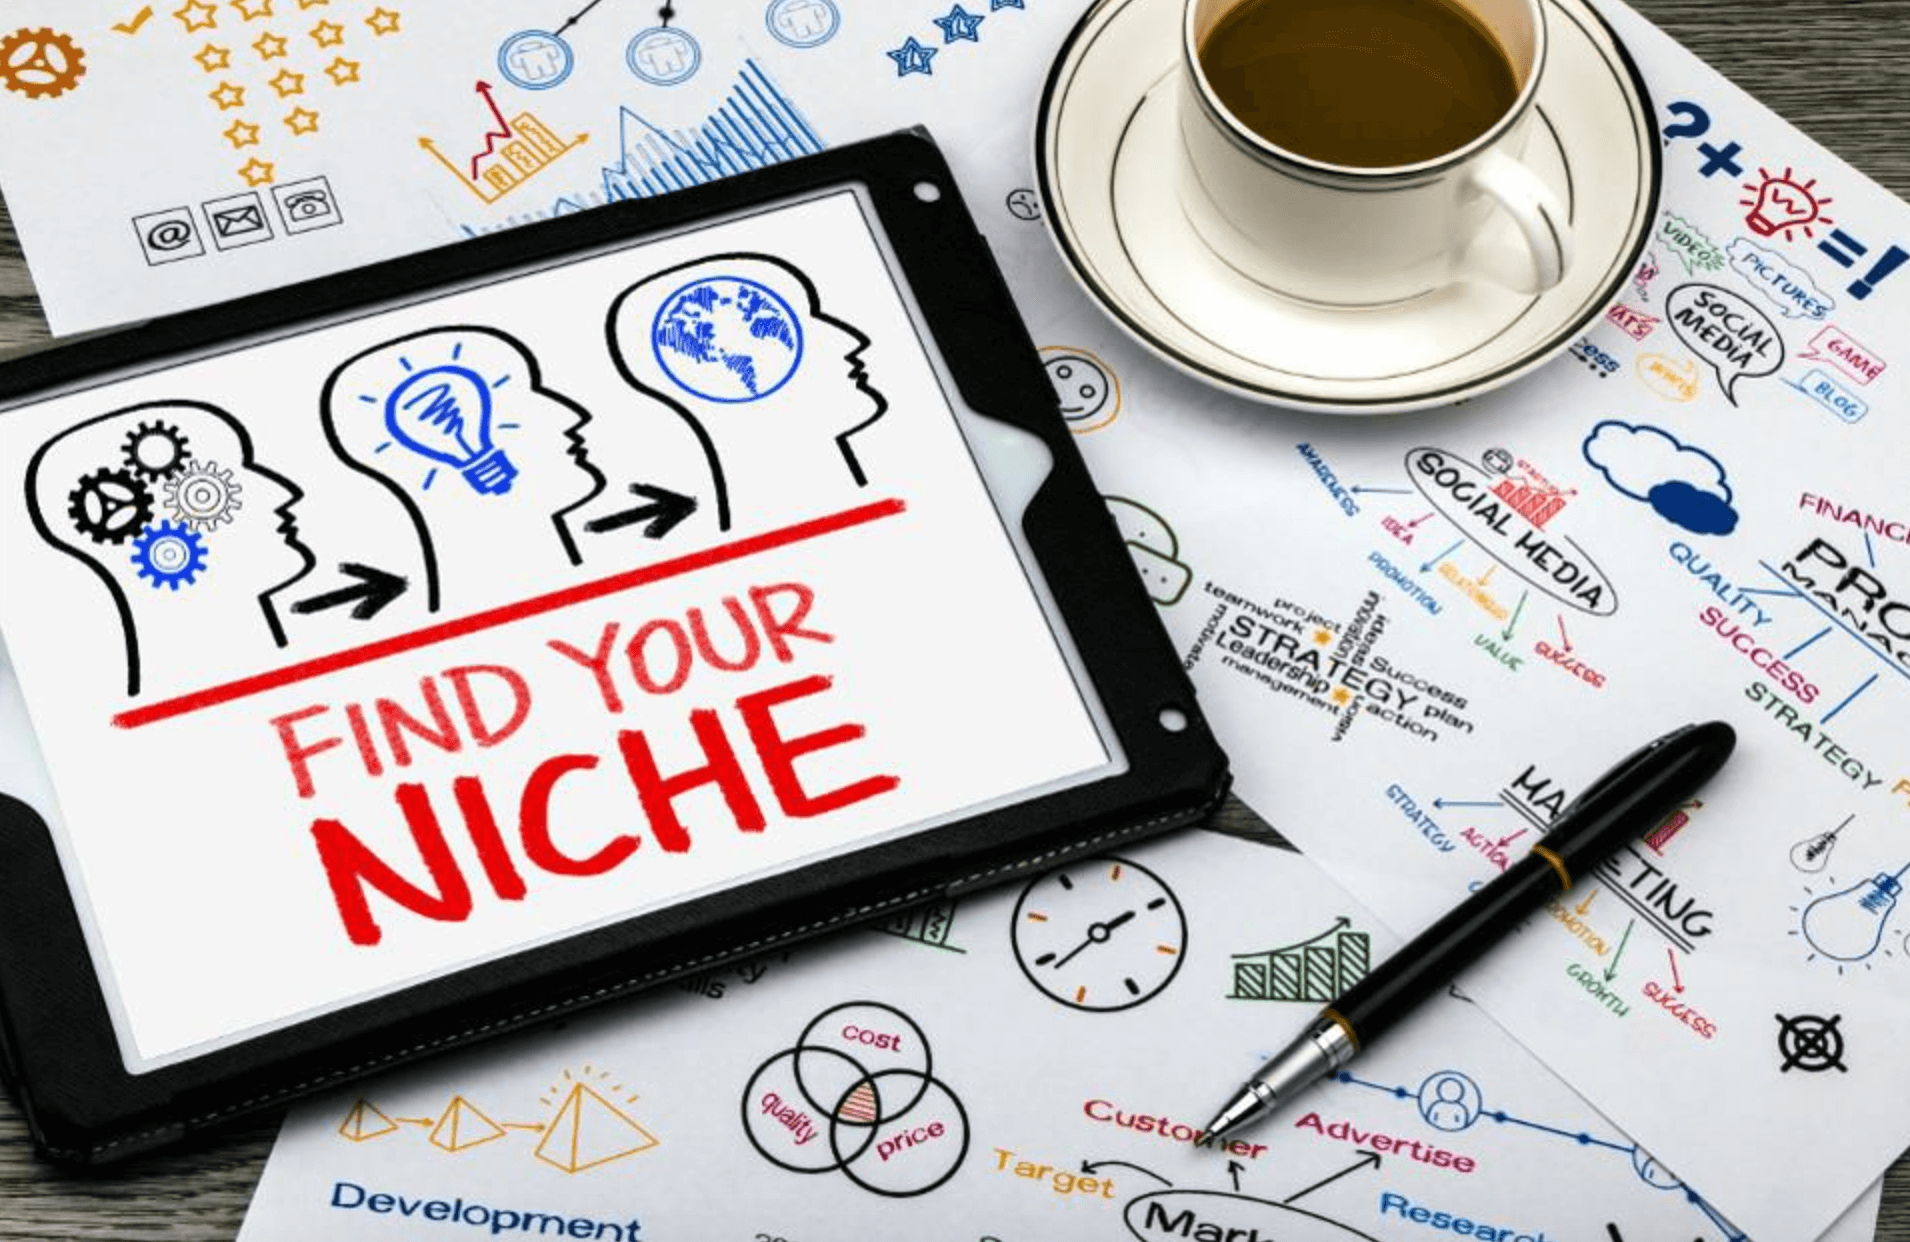 niche finder software with low competition keywords